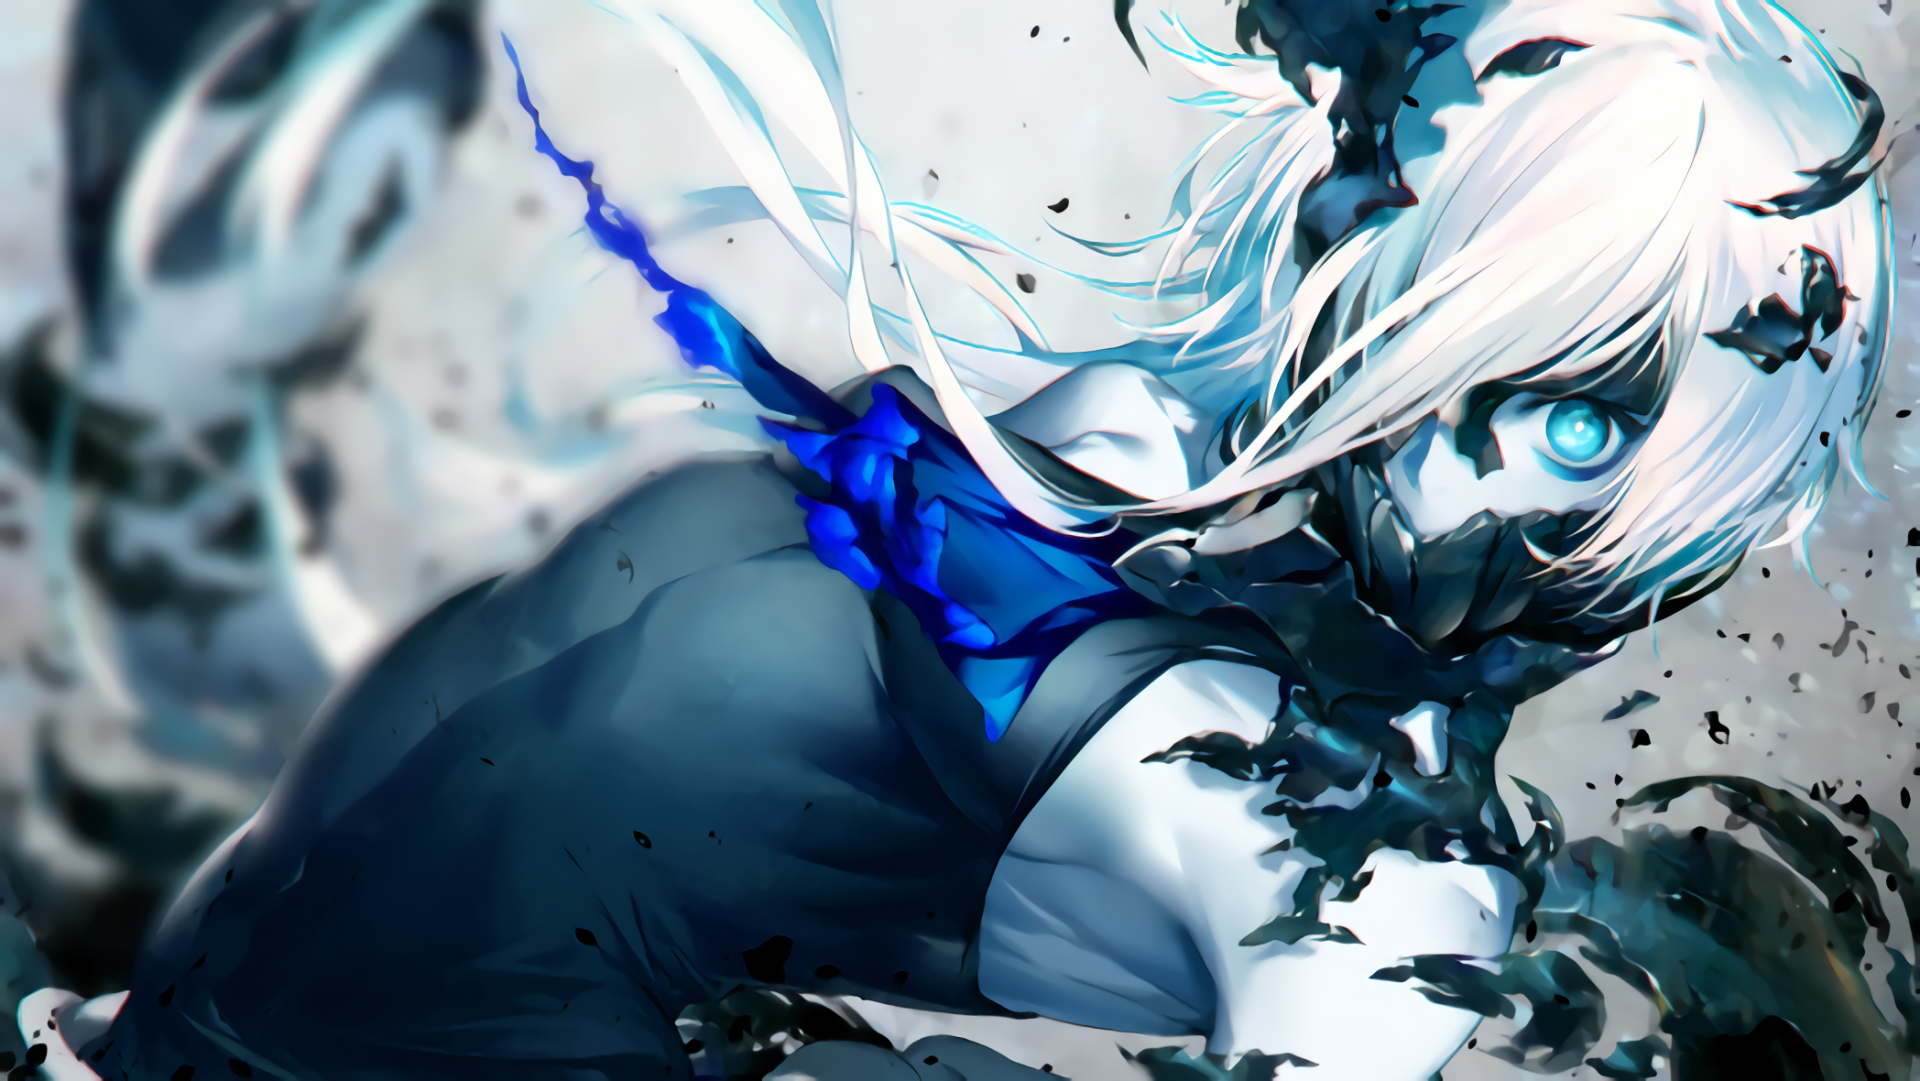 Kantai collection full hd wallpaper and background image - Anime full hd download ...